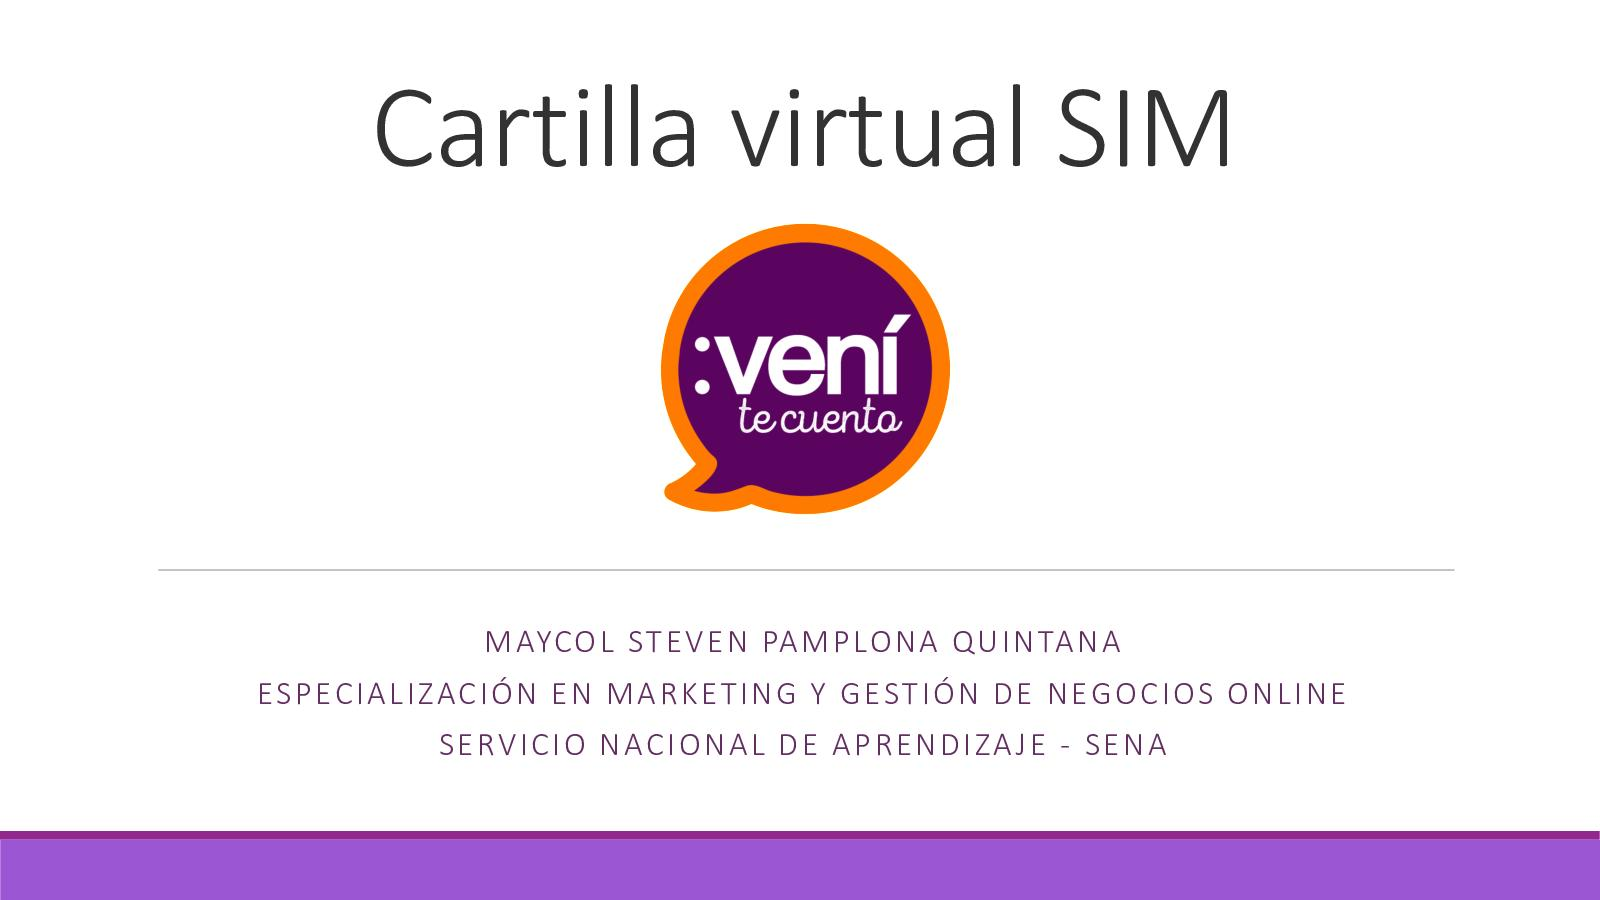 Cartilla Virtual Sim